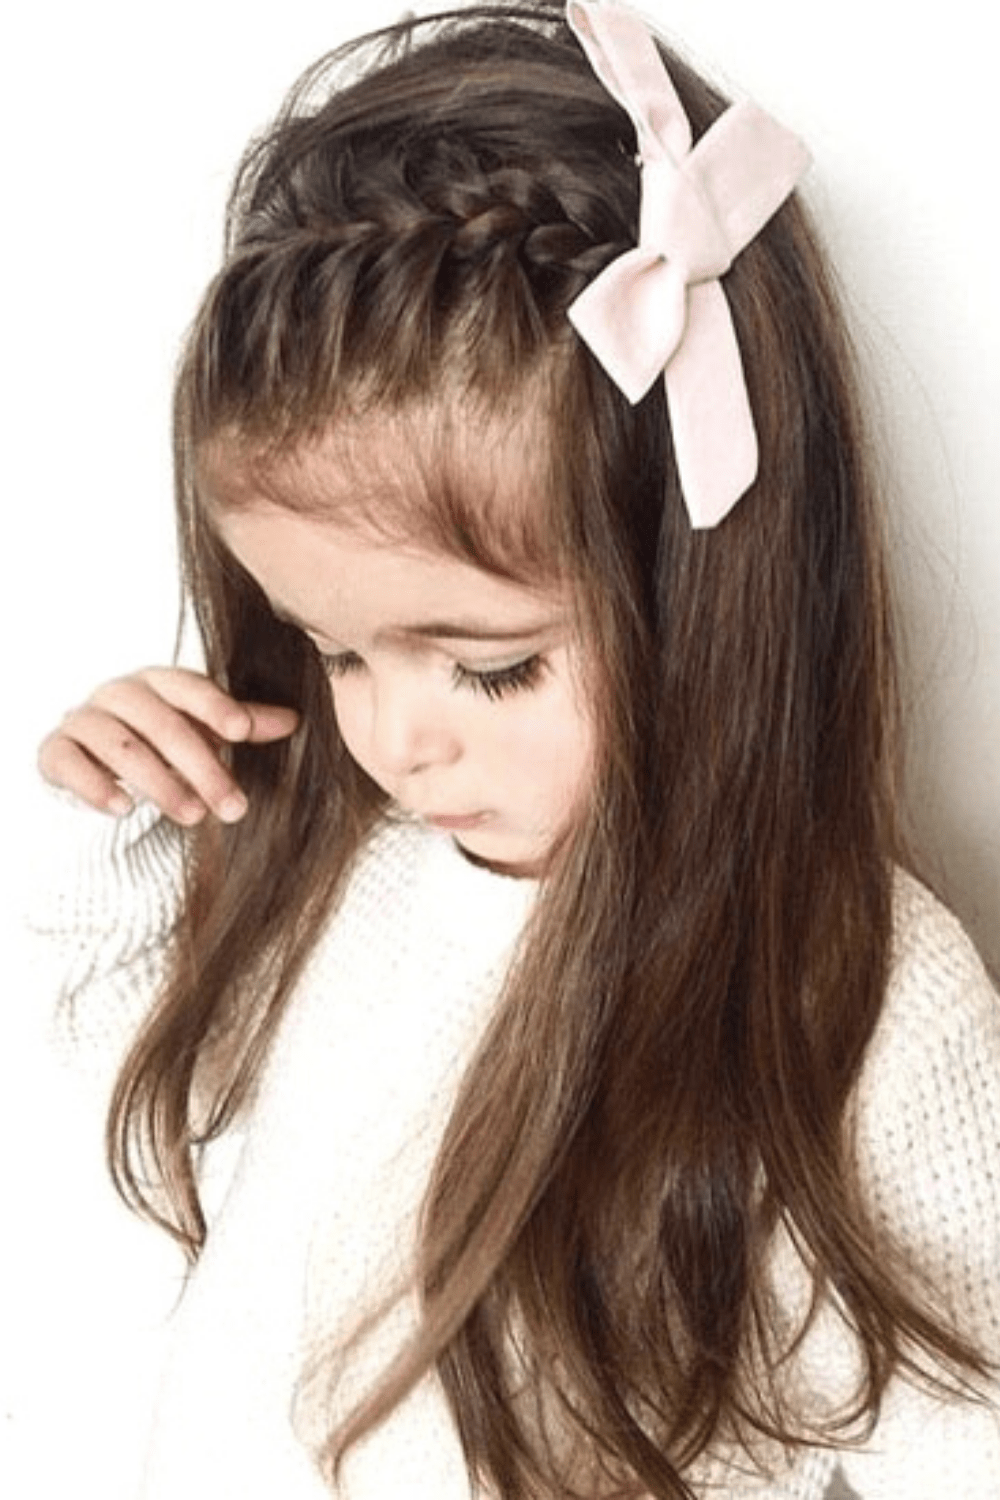 12 Simple and Adorable Toddler Girl Hairstyles for Medium to Long